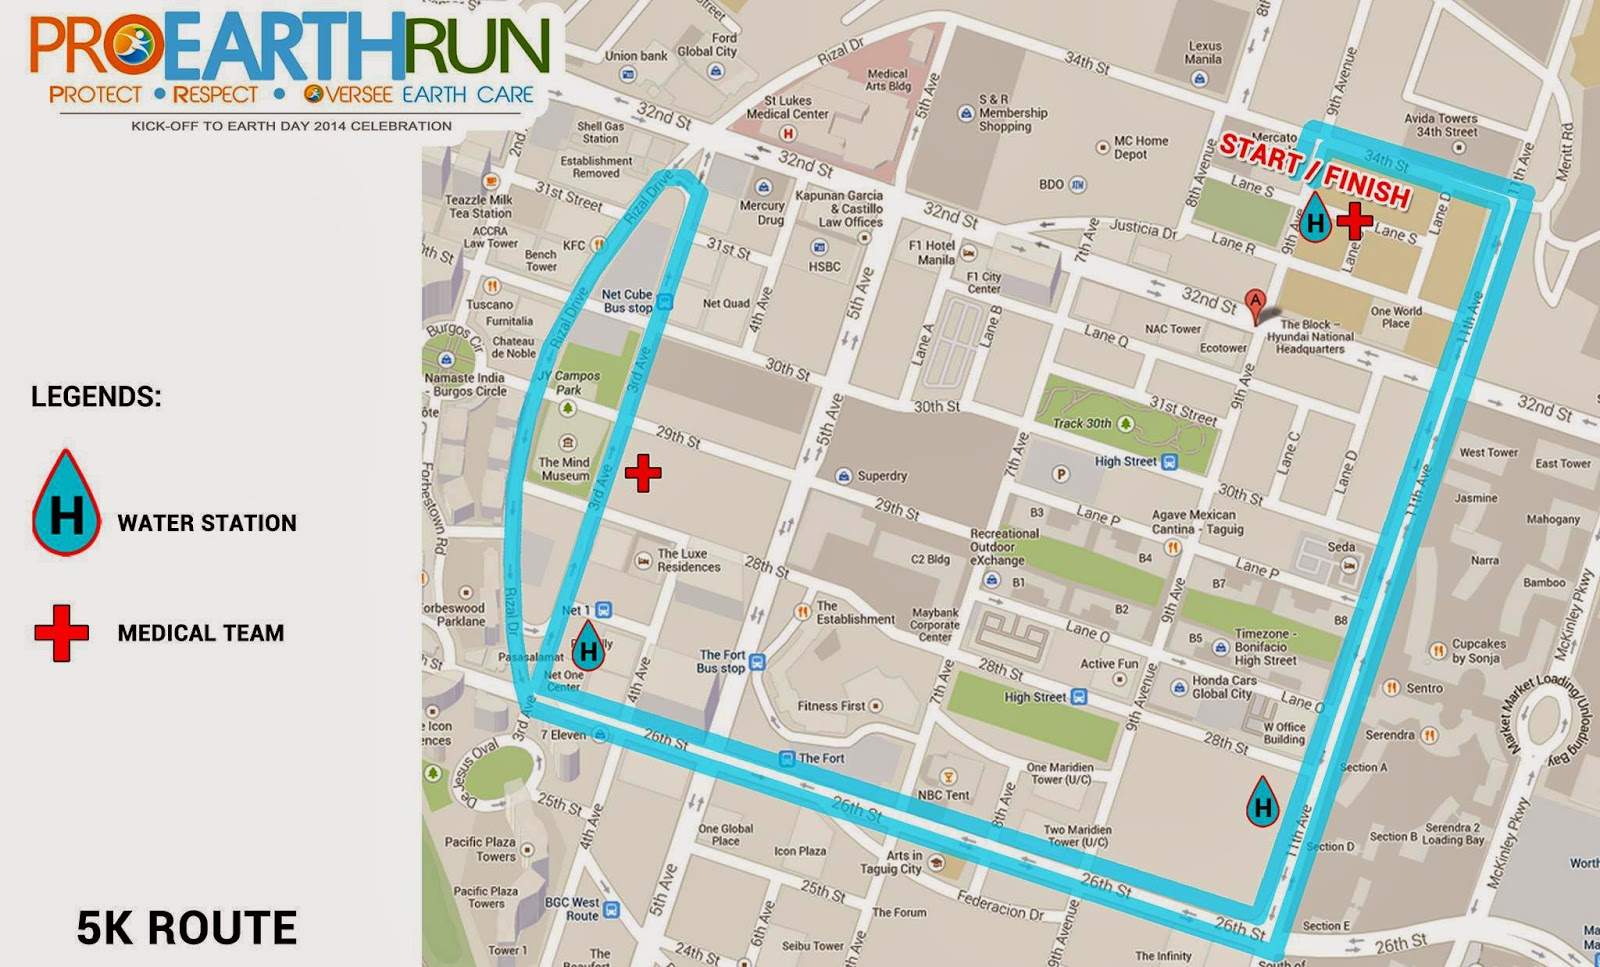 Map of 5k Route for Pro Earth Run 2014